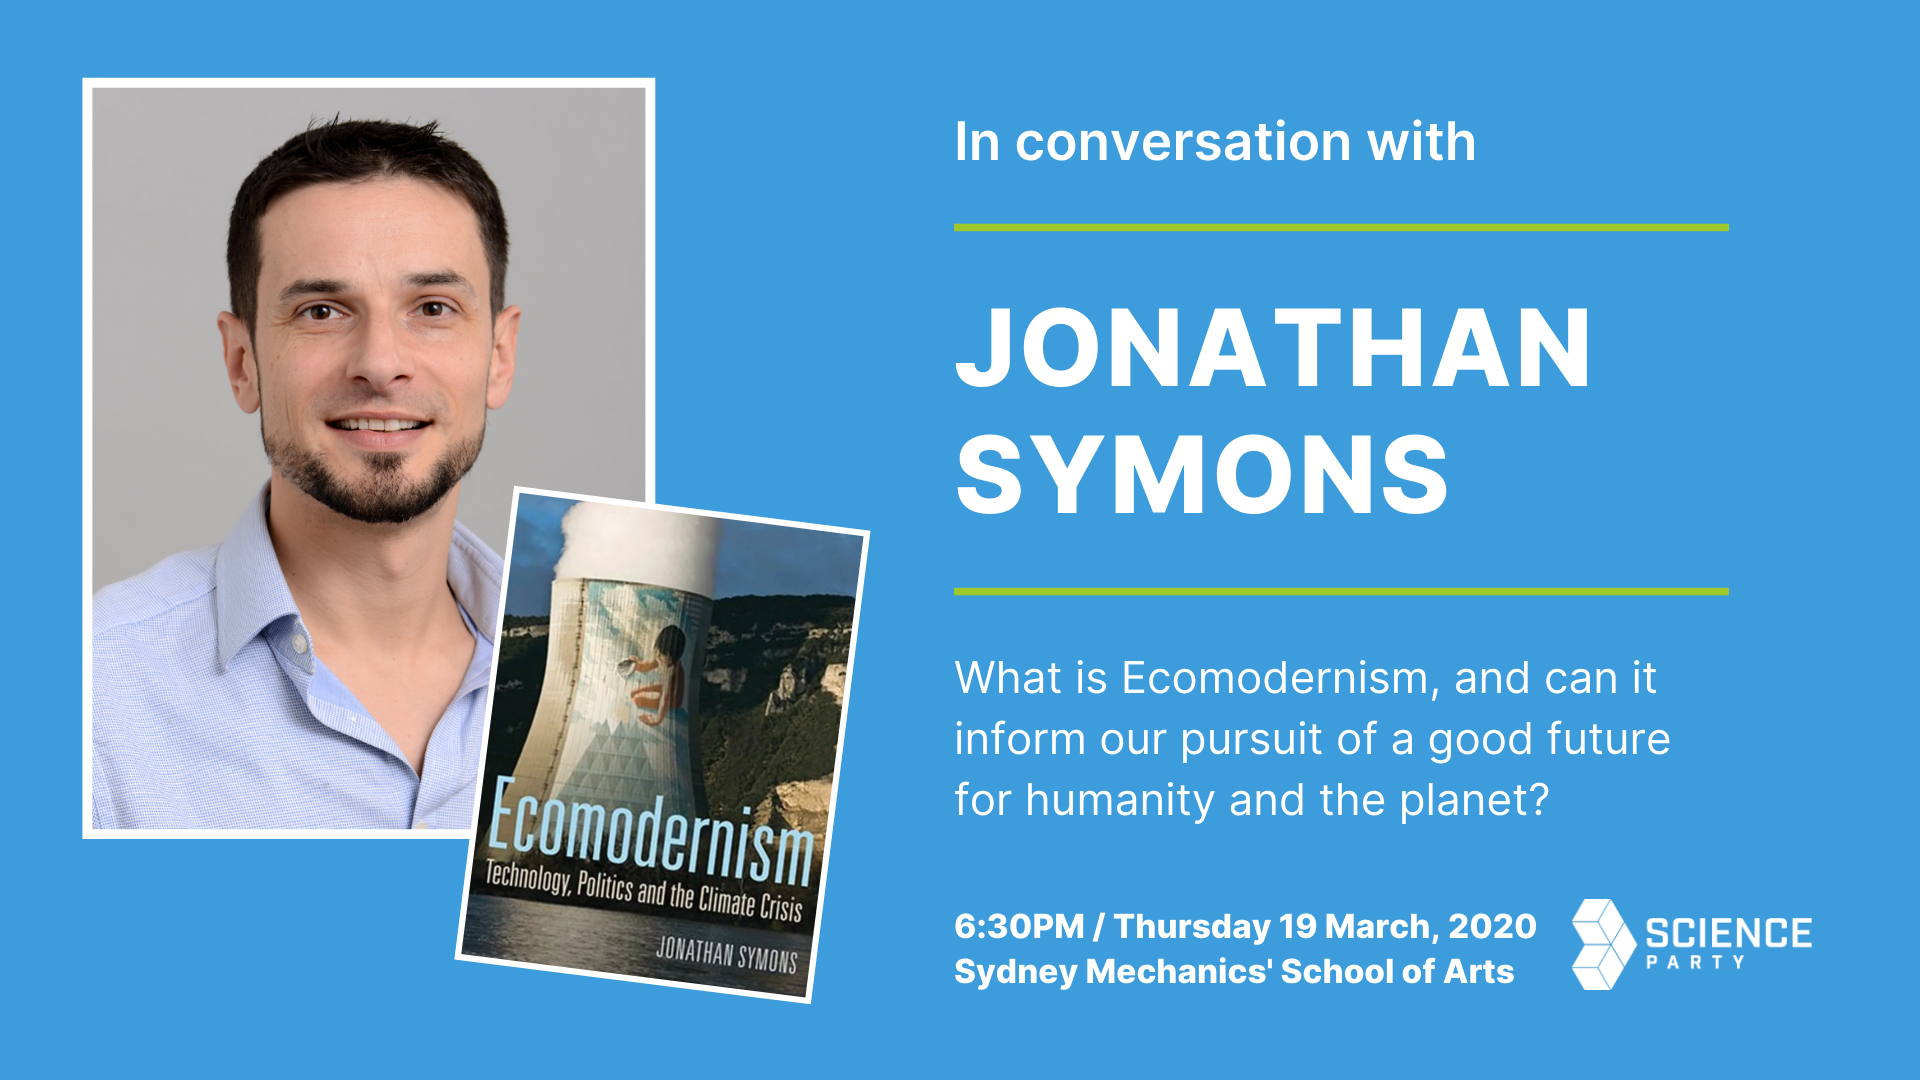 [Jon Symons and the cover of his book 'Ecomodernism'] What is ecomodenism, and can it inform our pursuit of a good future for humanity and the planet?